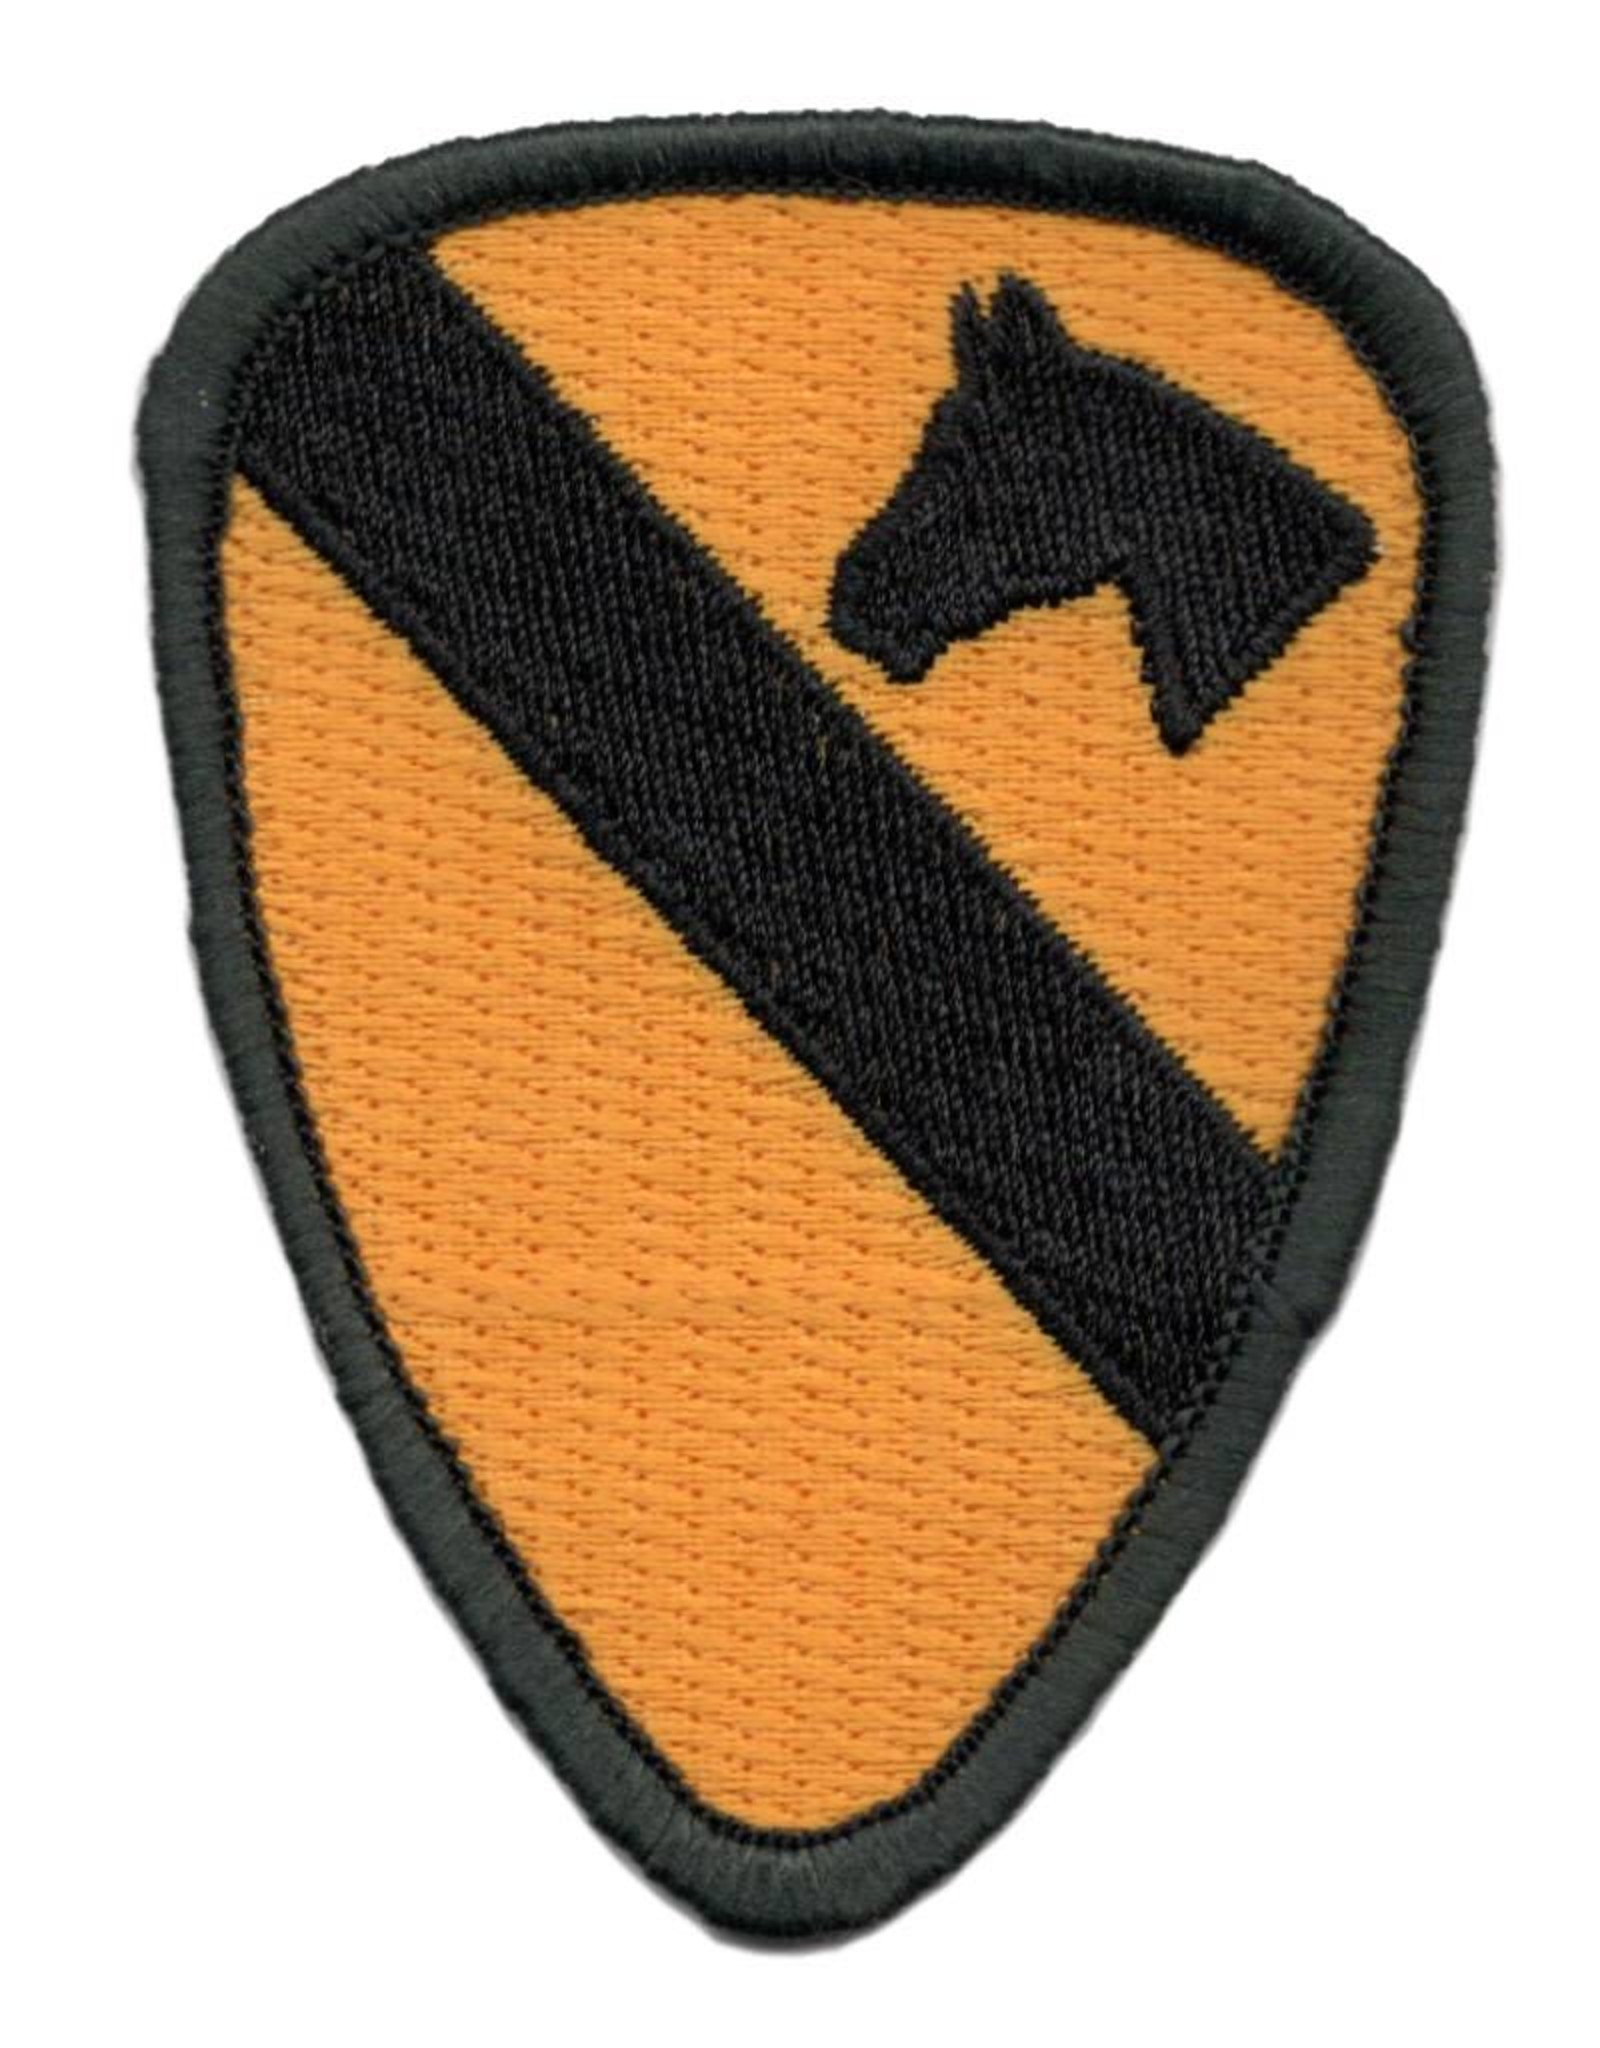 "MidMil Embroidered 1st Cavalry Division Emblem Patch 2.3"" wide x 3.2"" high"